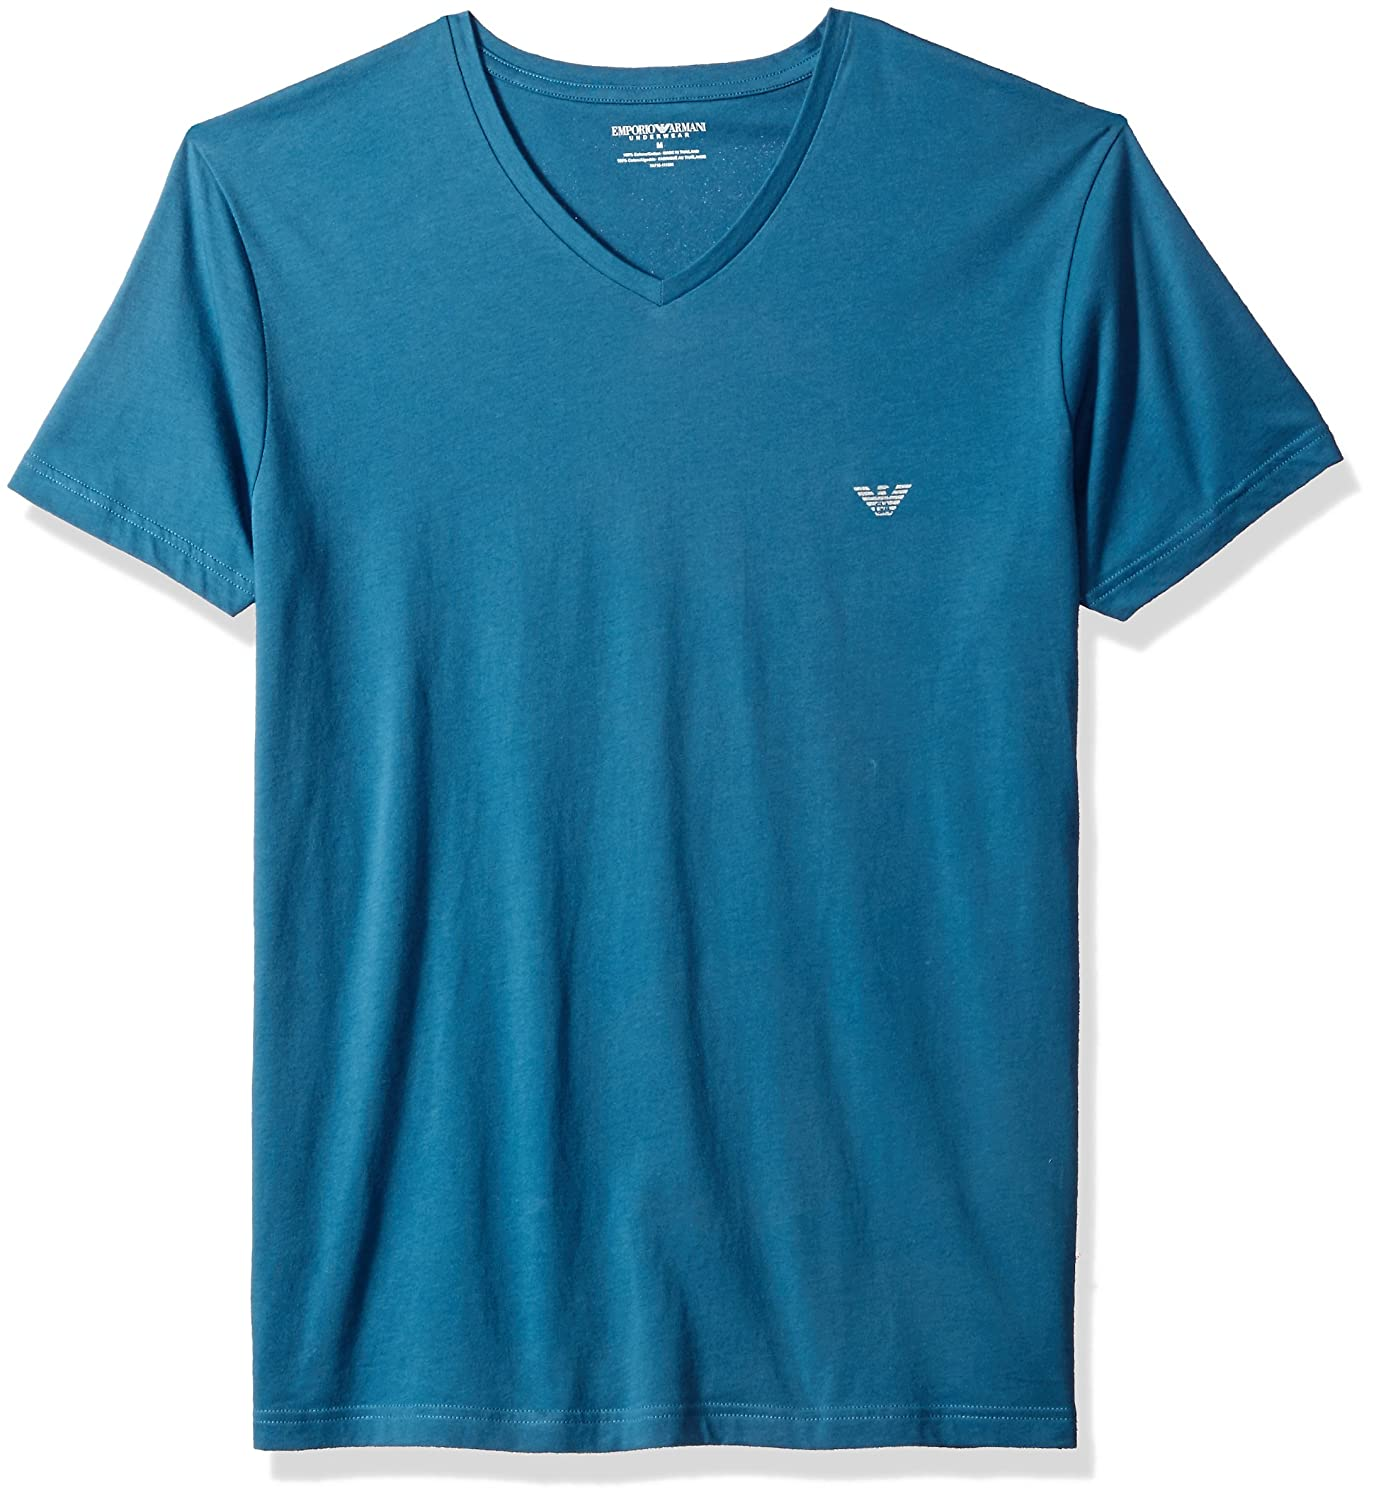 48b9ef5ac700 Emporio Armani Men's Superfine Pima Cotton Vneck T-Shirt at Amazon Men's  Clothing store: